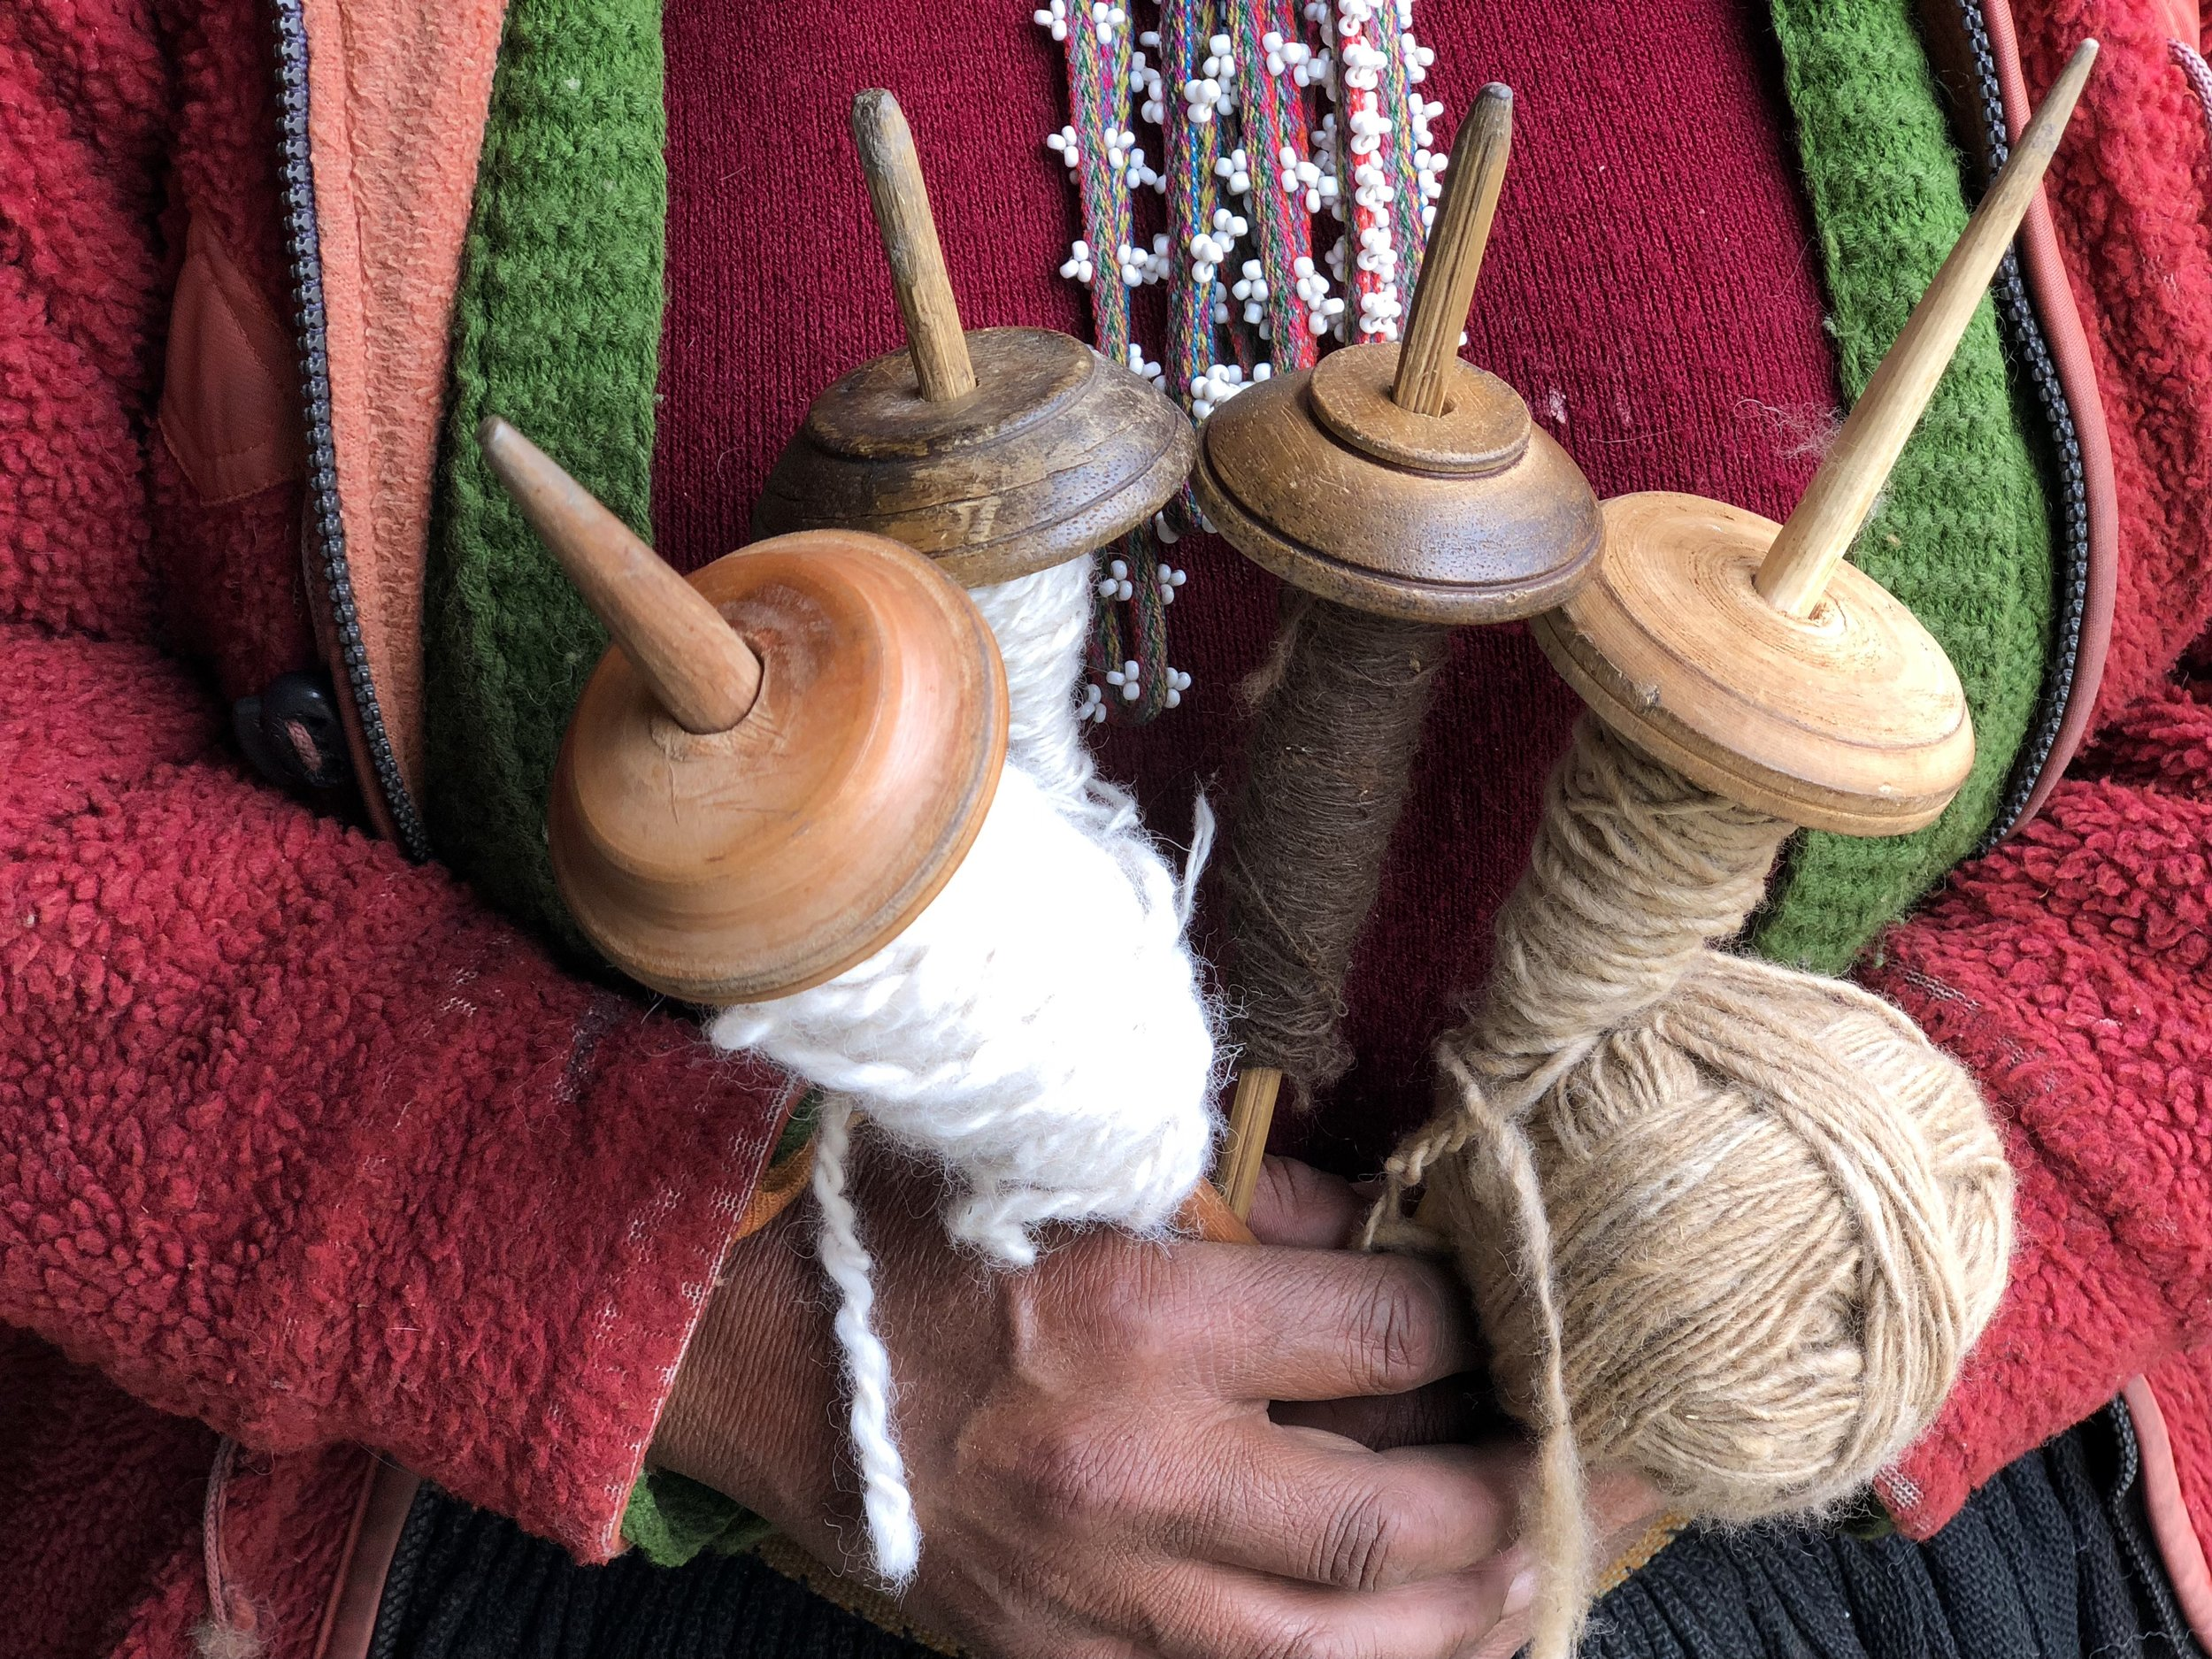 A tool called a puska, is used to spin the raw fiber into yarn.